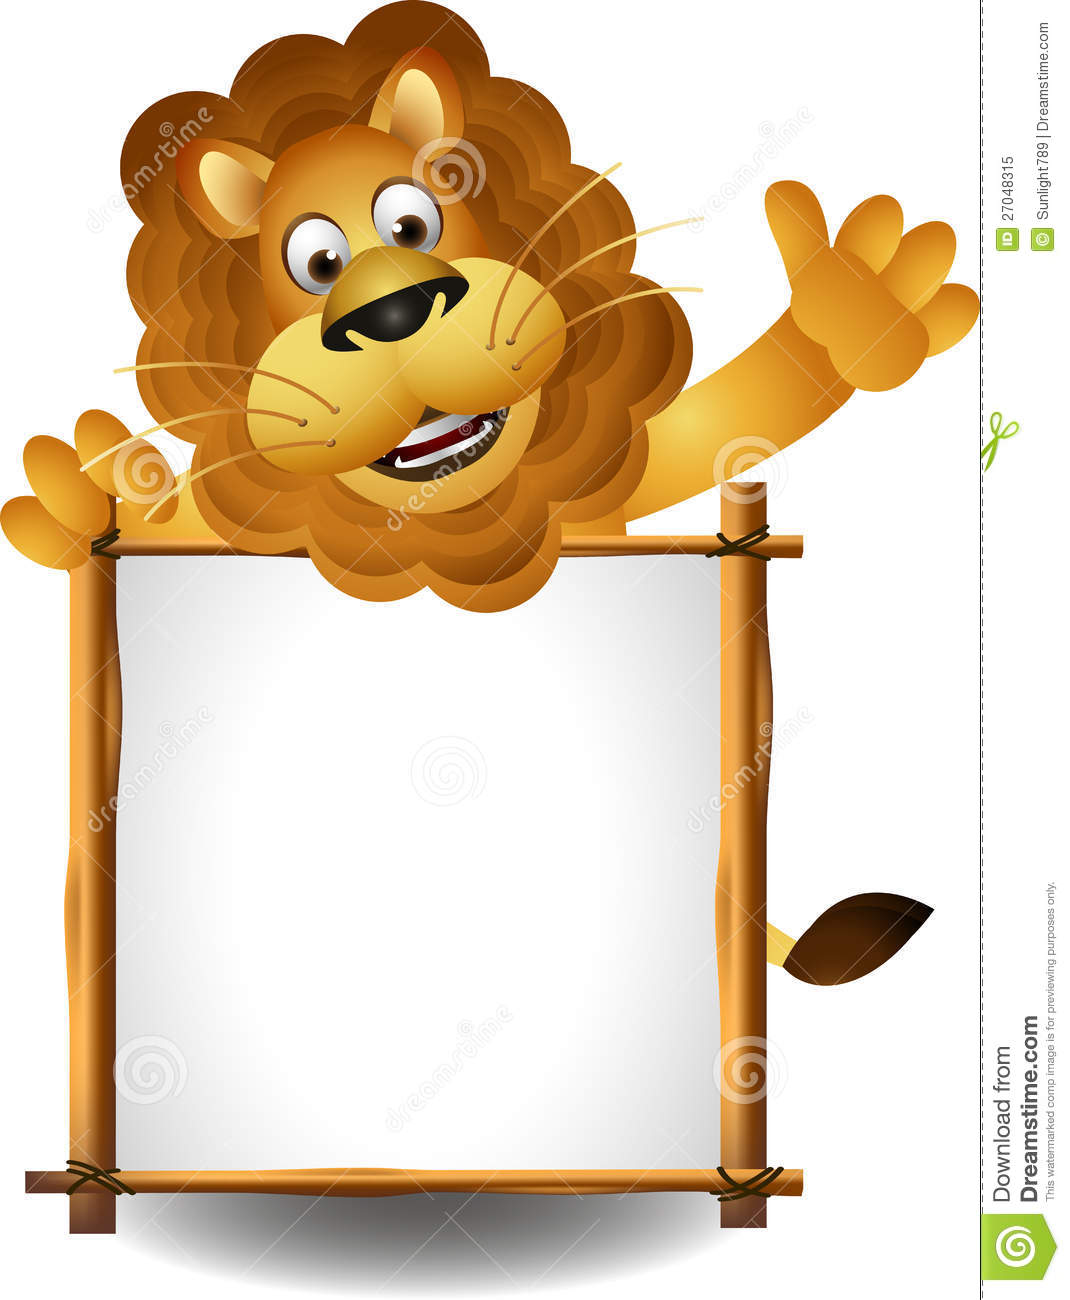 Lion Cartoon With Board Royalty Free Stock Photo - Image: 27048315